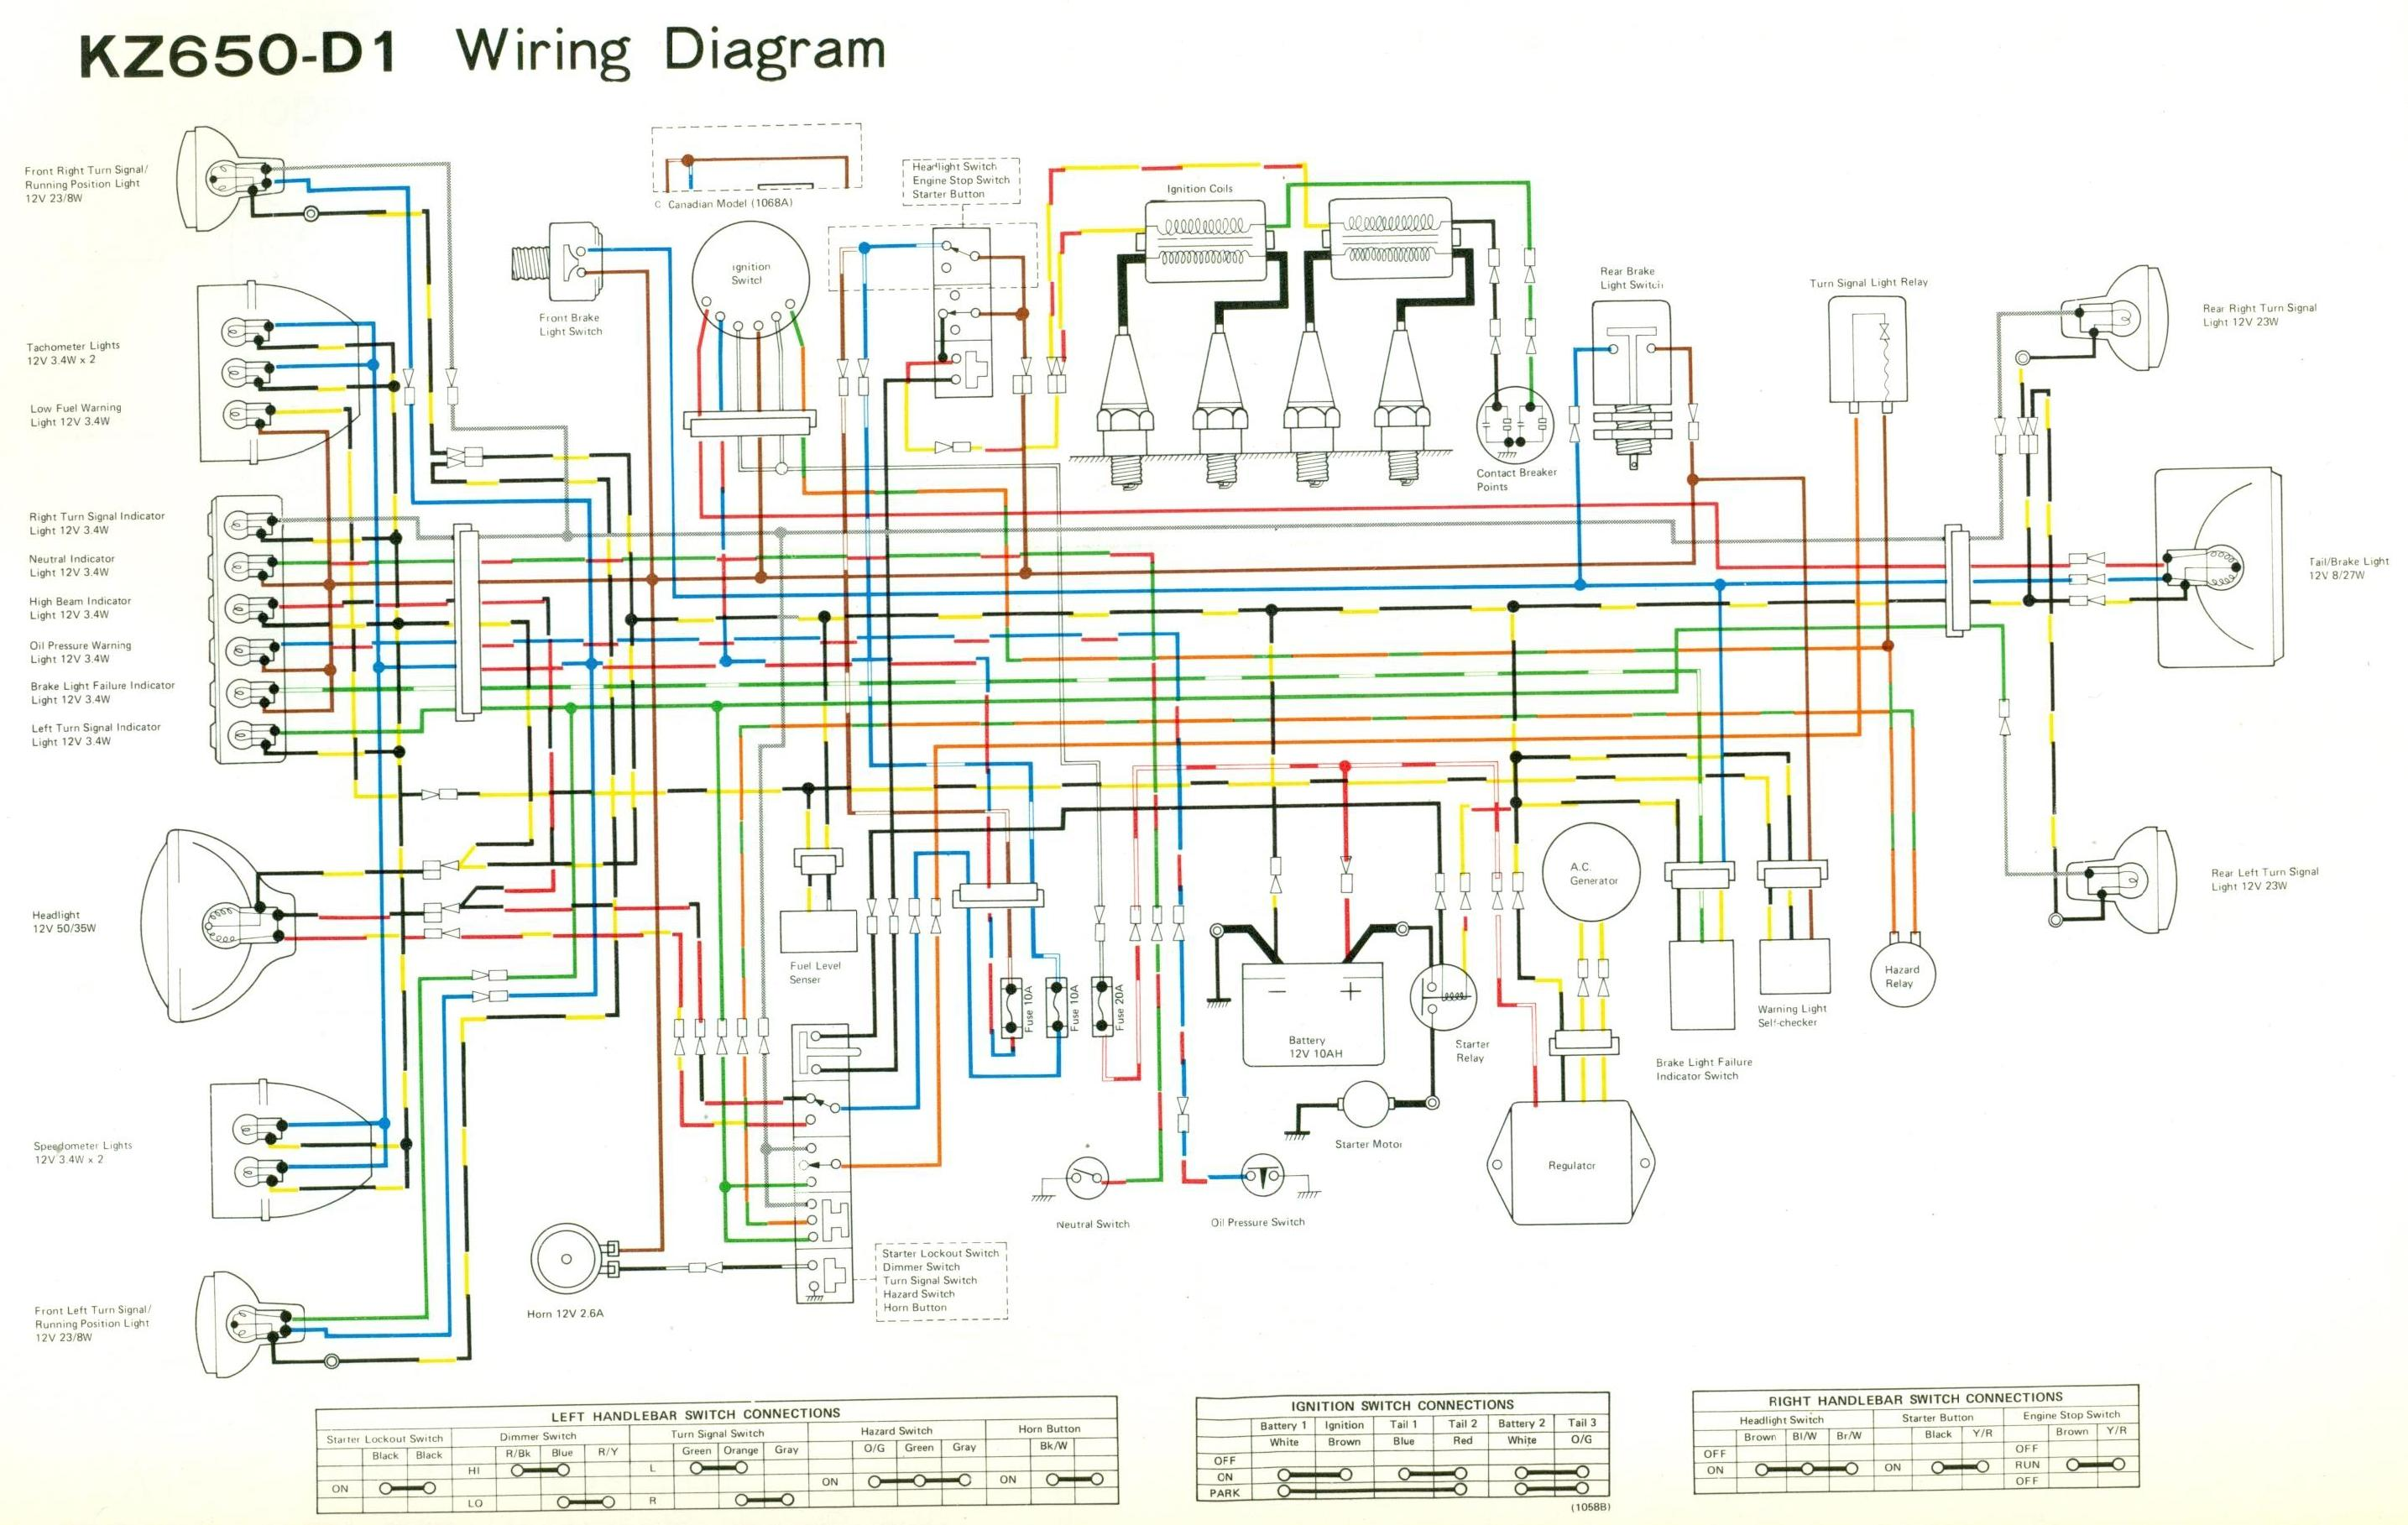 KZ650 D wiring diagrams 1978 kawasaki kz650 wiring harness at alyssarenee.co